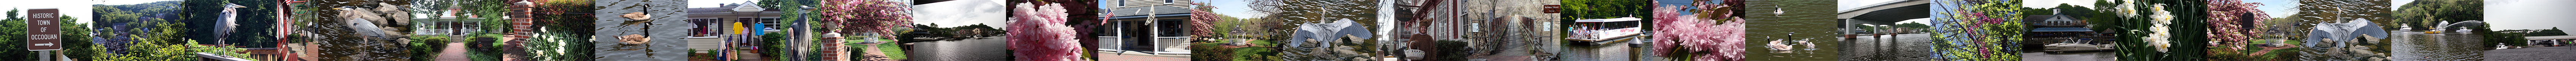 Spring 2016 in Historic Occoquan